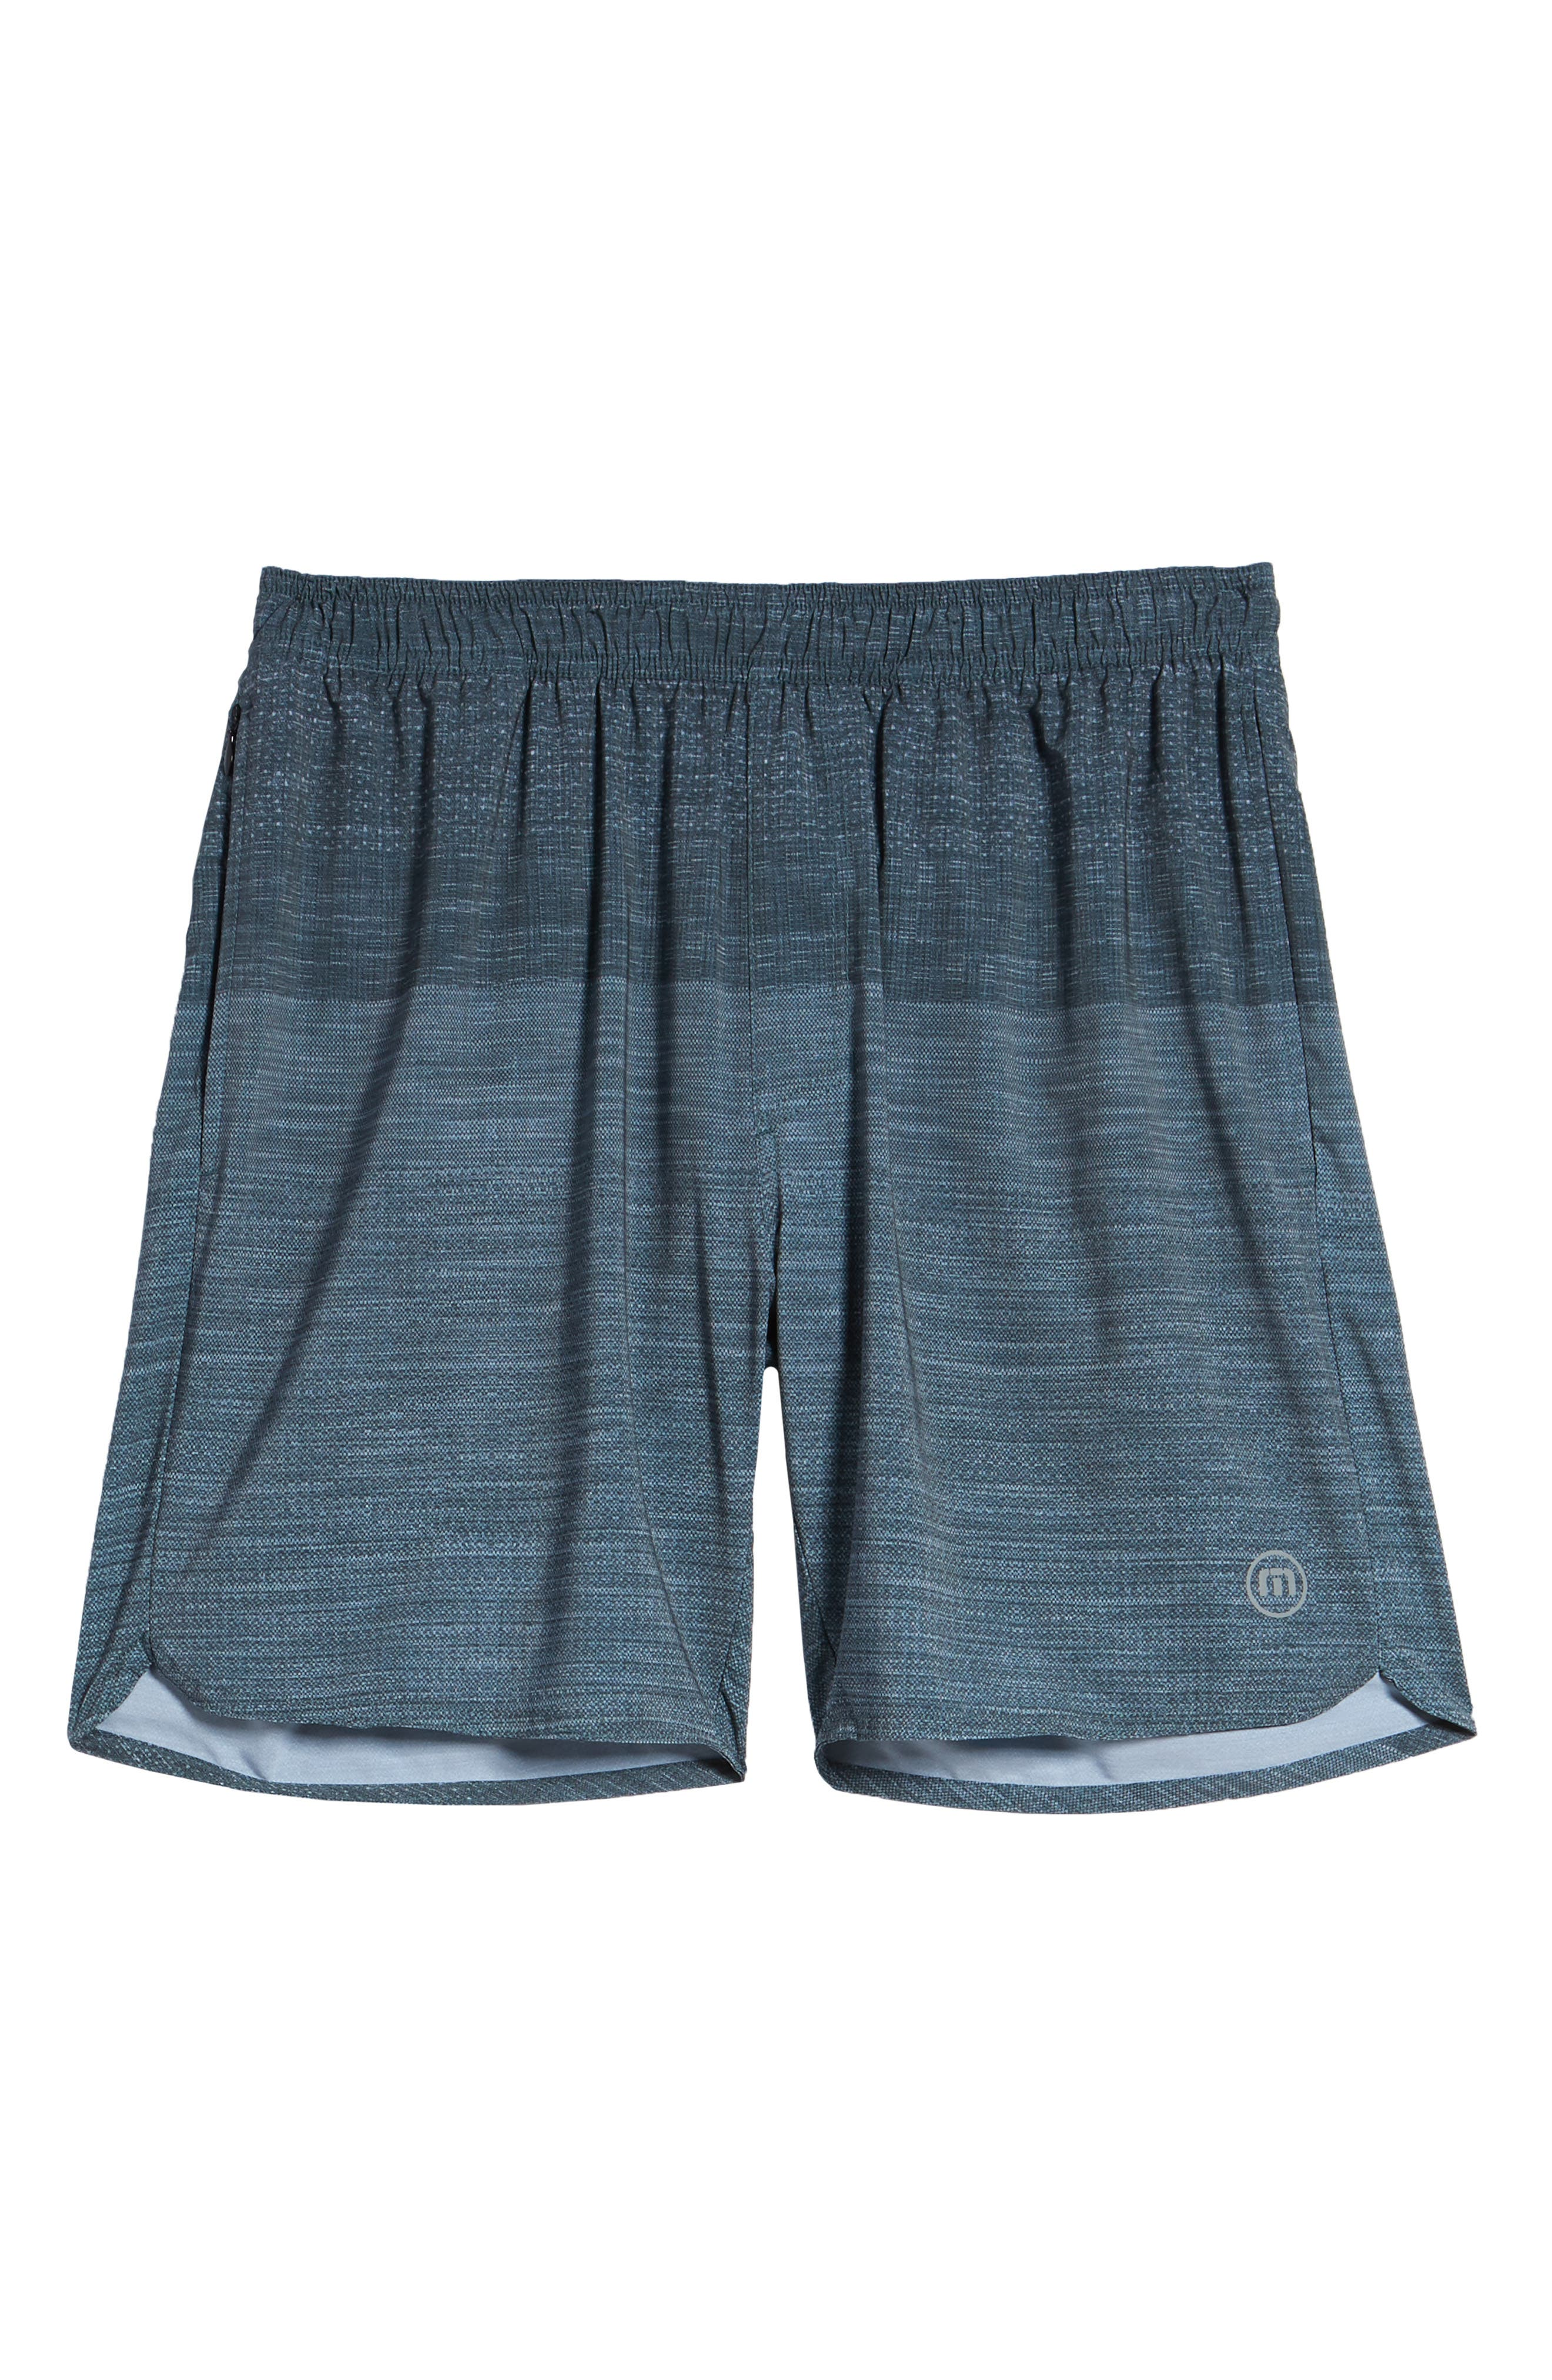 Tempo Performance Shorts,                             Alternate thumbnail 6, color,                             HEATHER QUIET SHADE